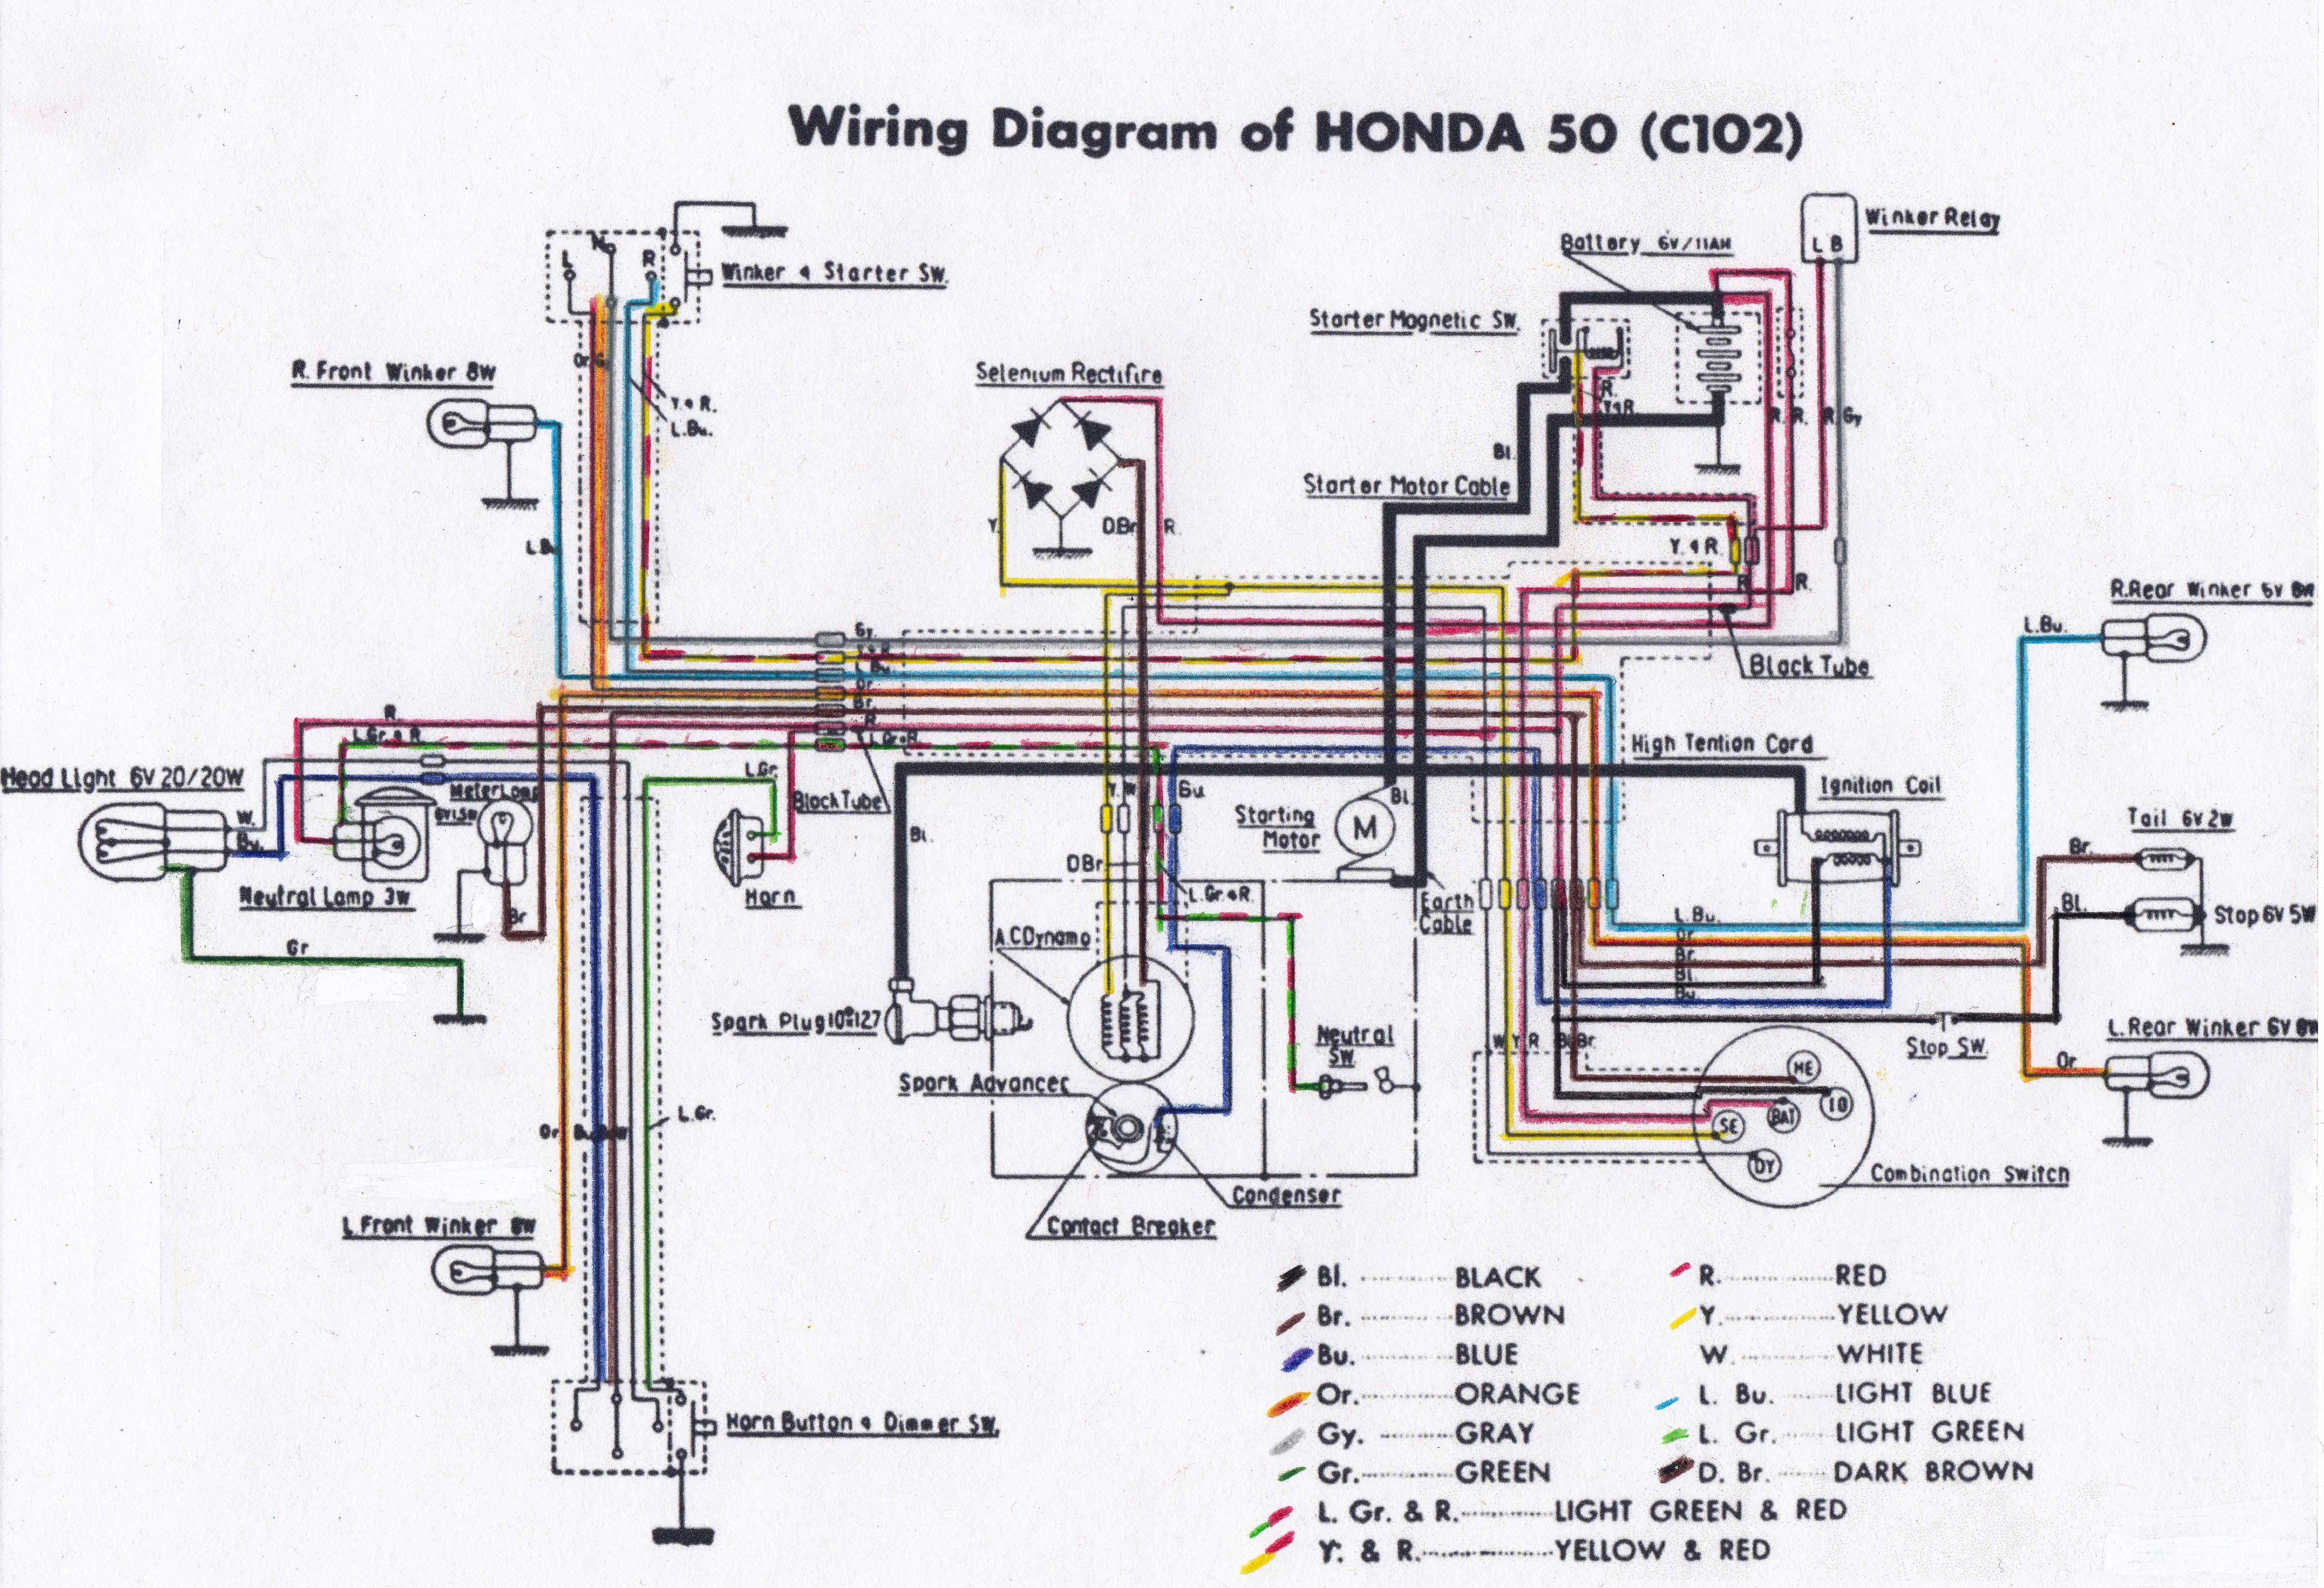 Honda C102 Wiring schematic, Colourized